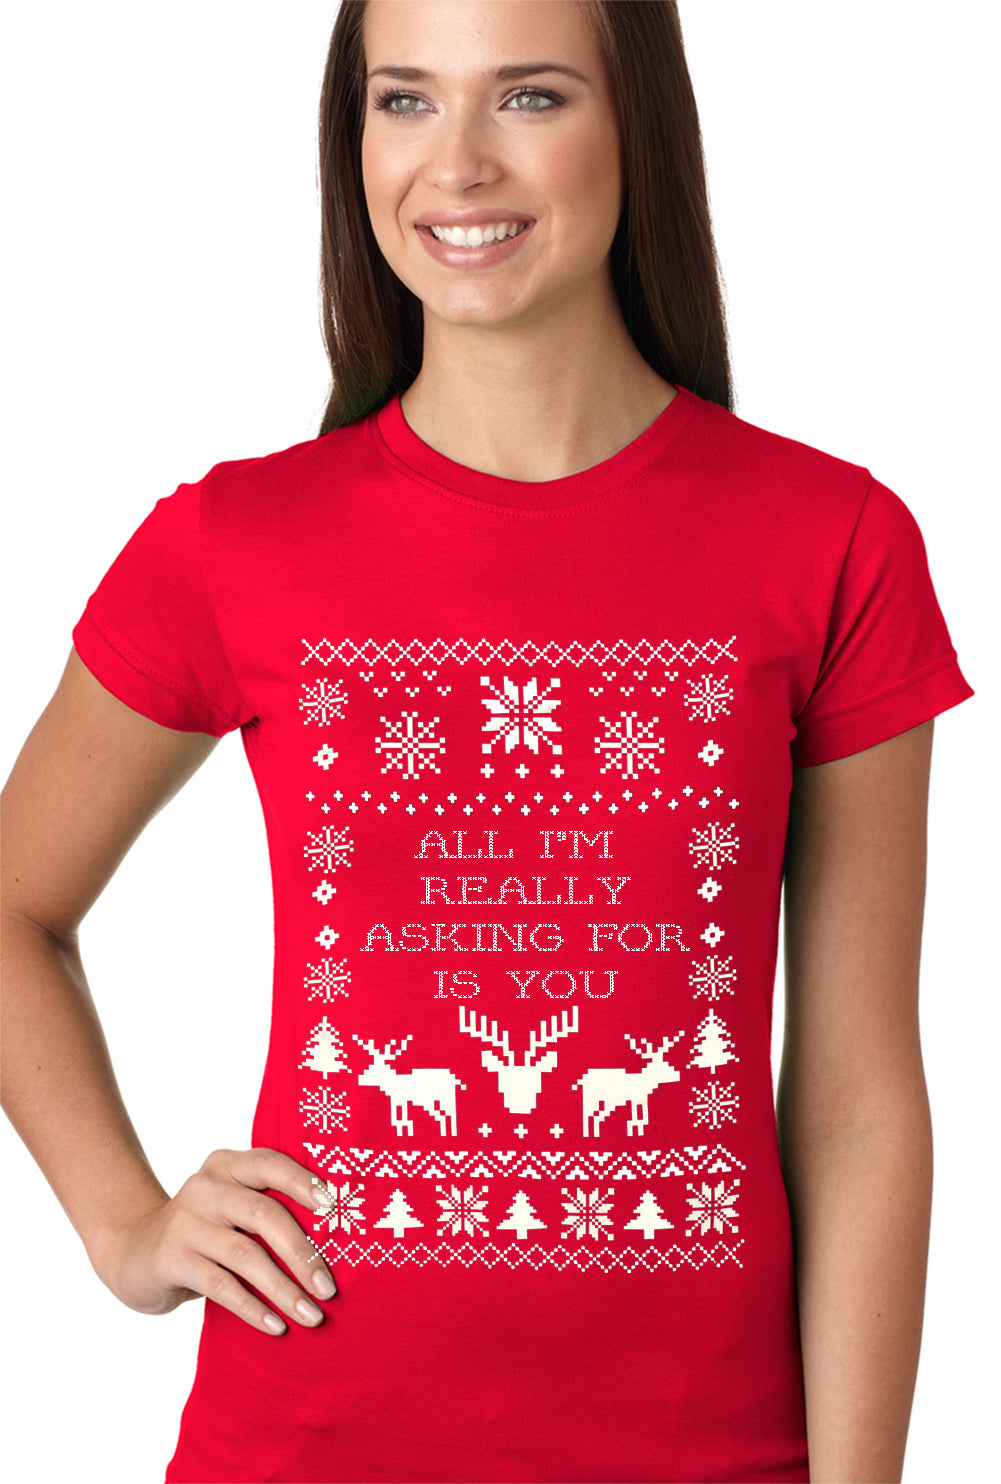 All I'm Really Asking For Is You Ugly Christmas Girls T-shirt